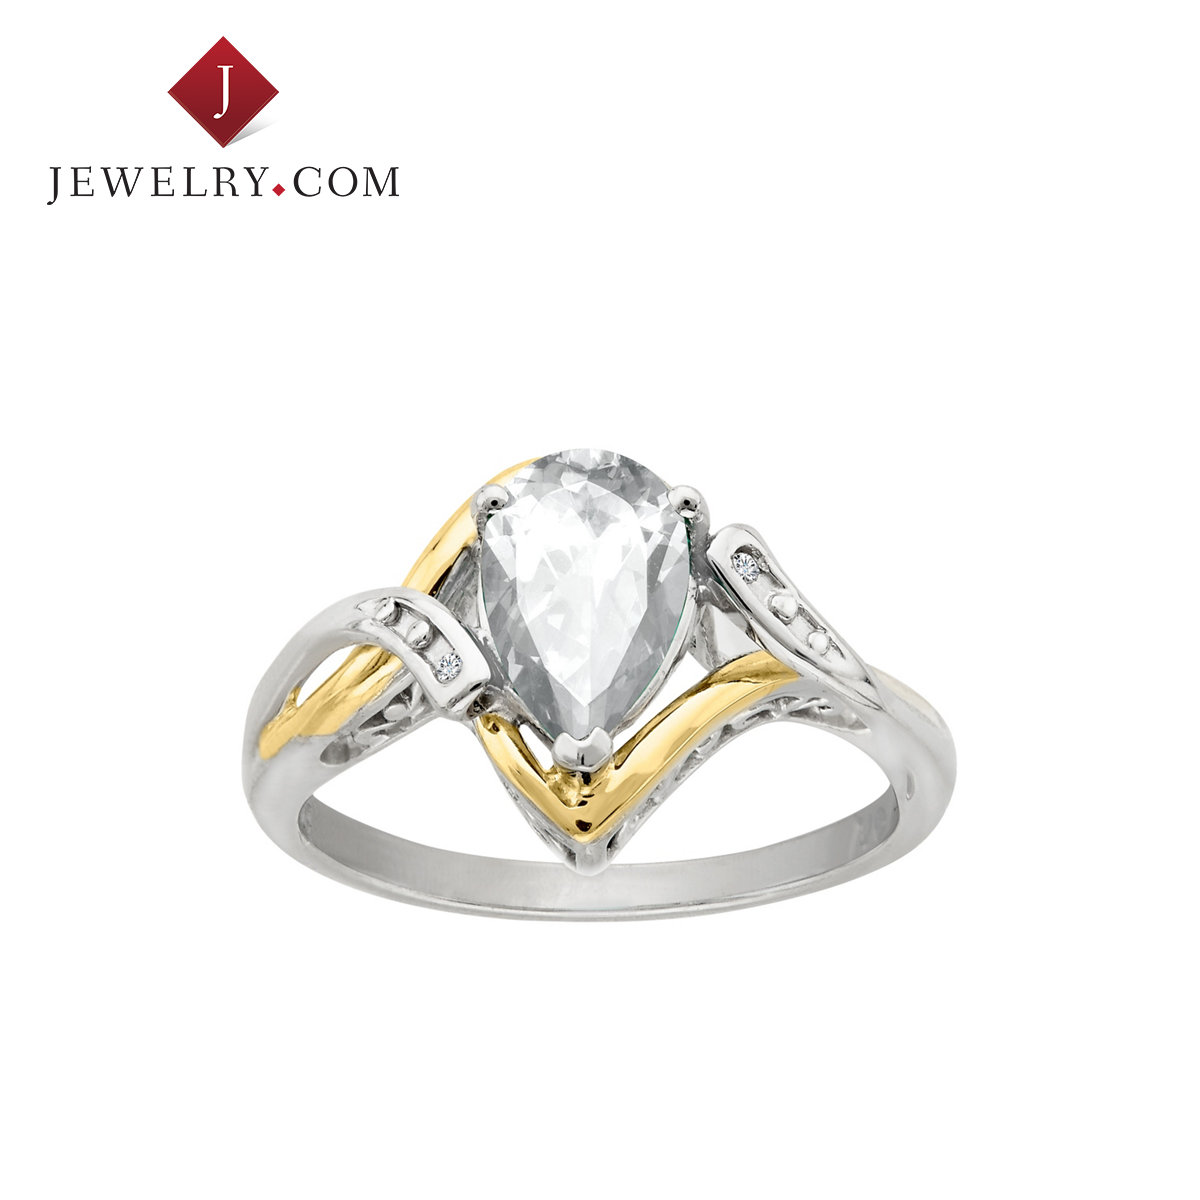 Jewelry.com official silver 925 k gold topaz nvjie exquisite fashion wild temperament elegant wind